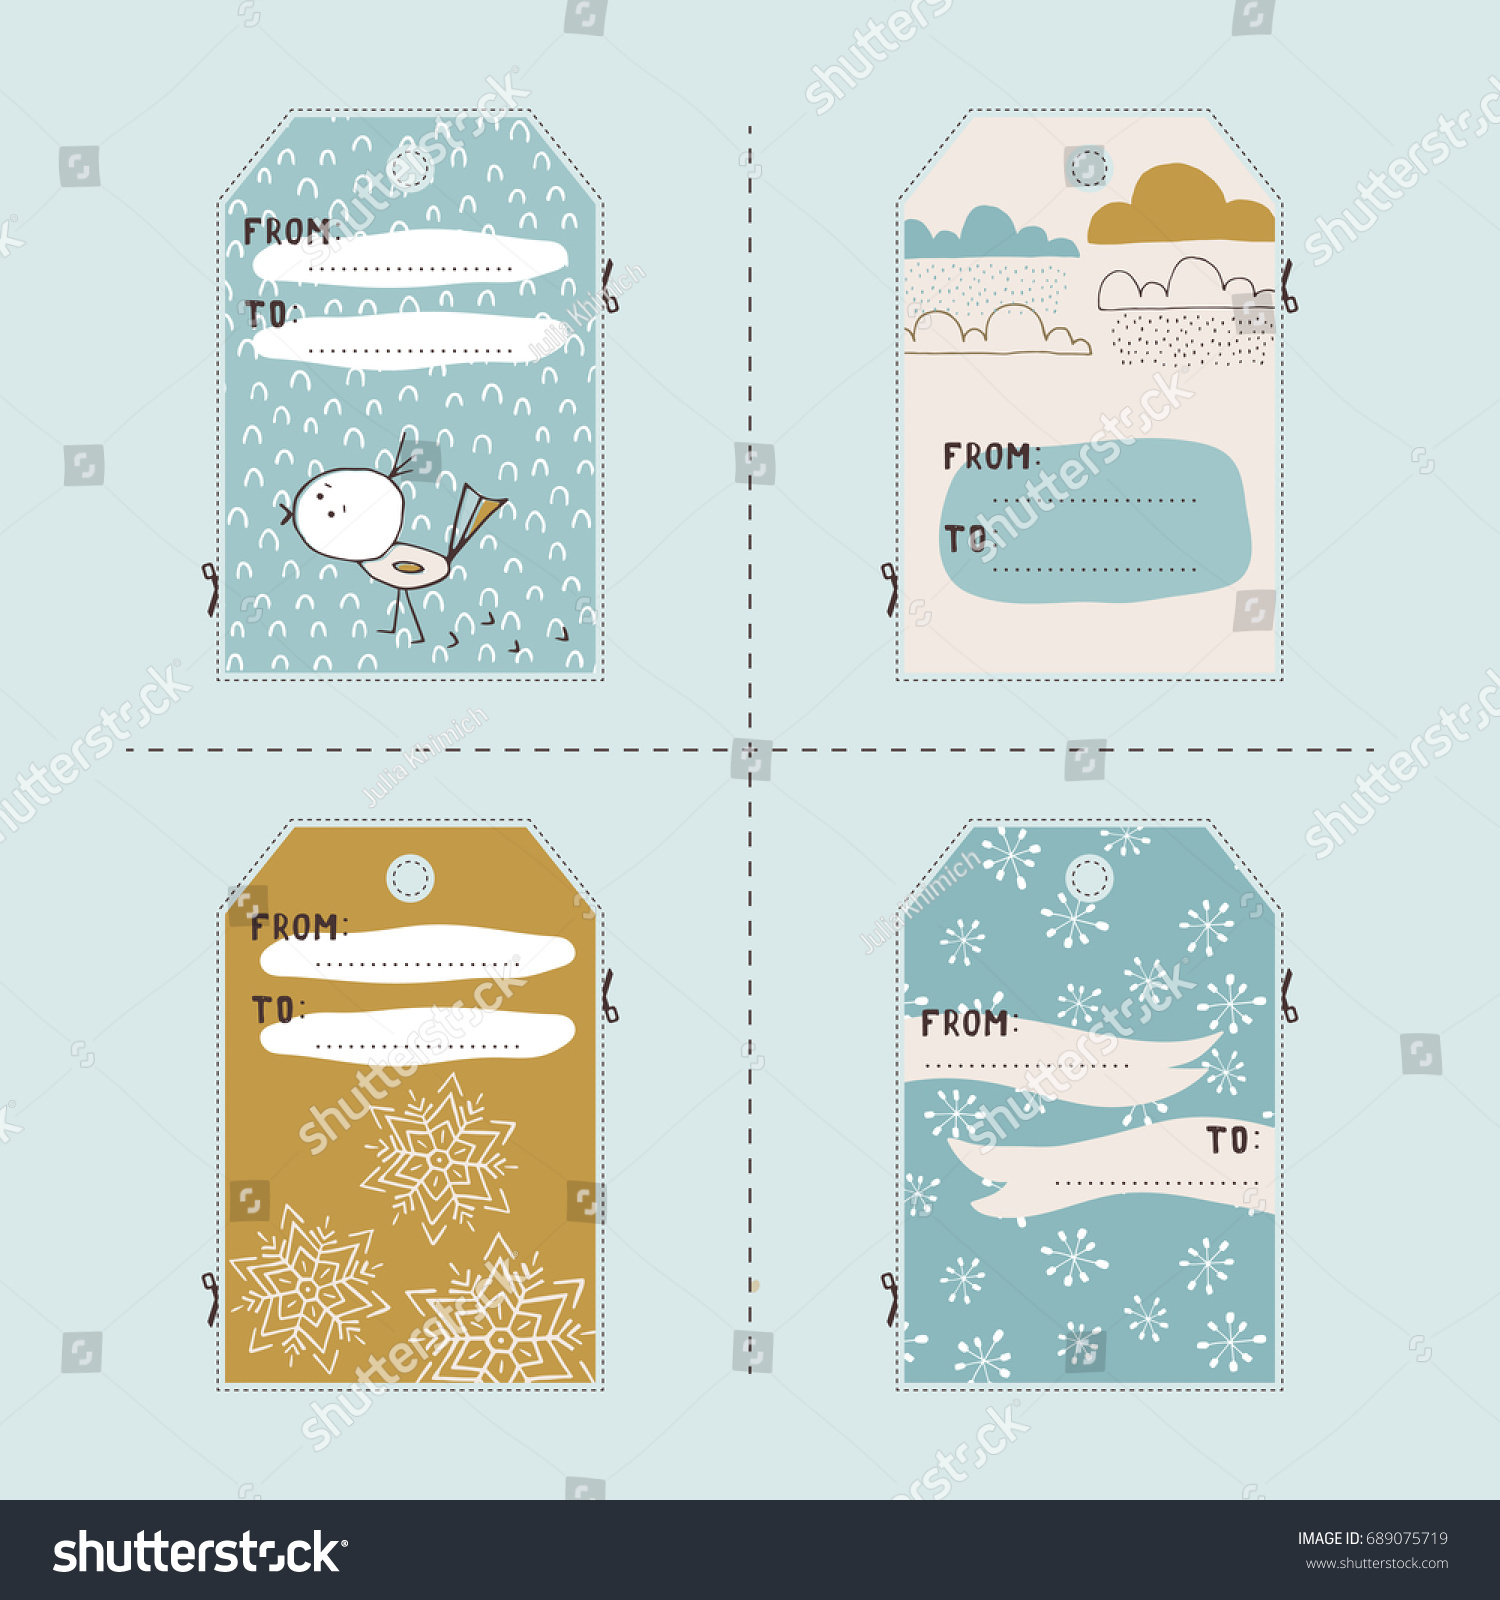 vector set of winter gift tag templates printable collection for christmas and new year holidays